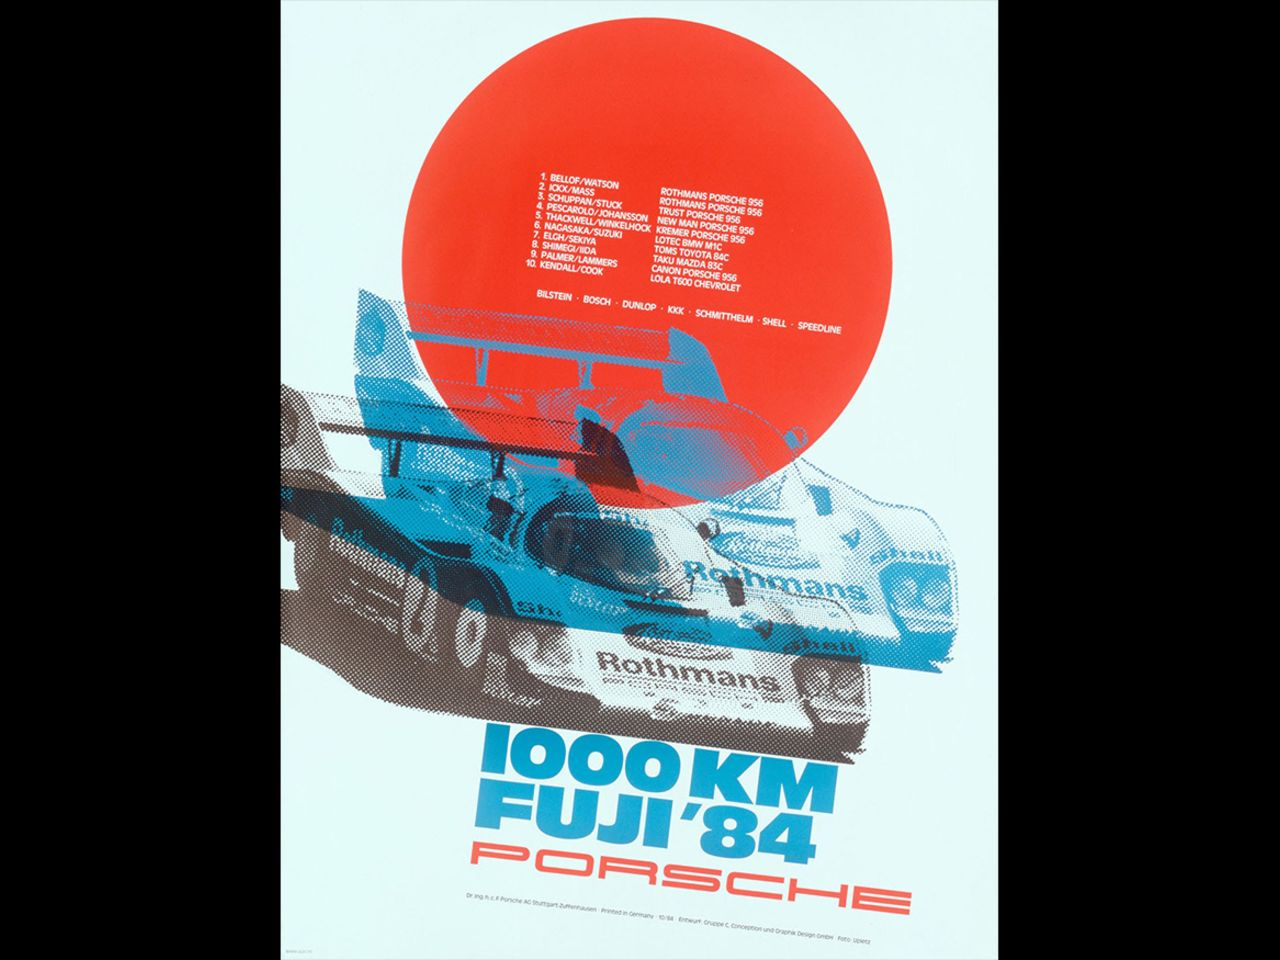 This poster commemorating the legendary victory by the Porsche 956 at the 1,000 Kilometers of Fuji in 1984 features a background reminiscent of the Japanese flag.